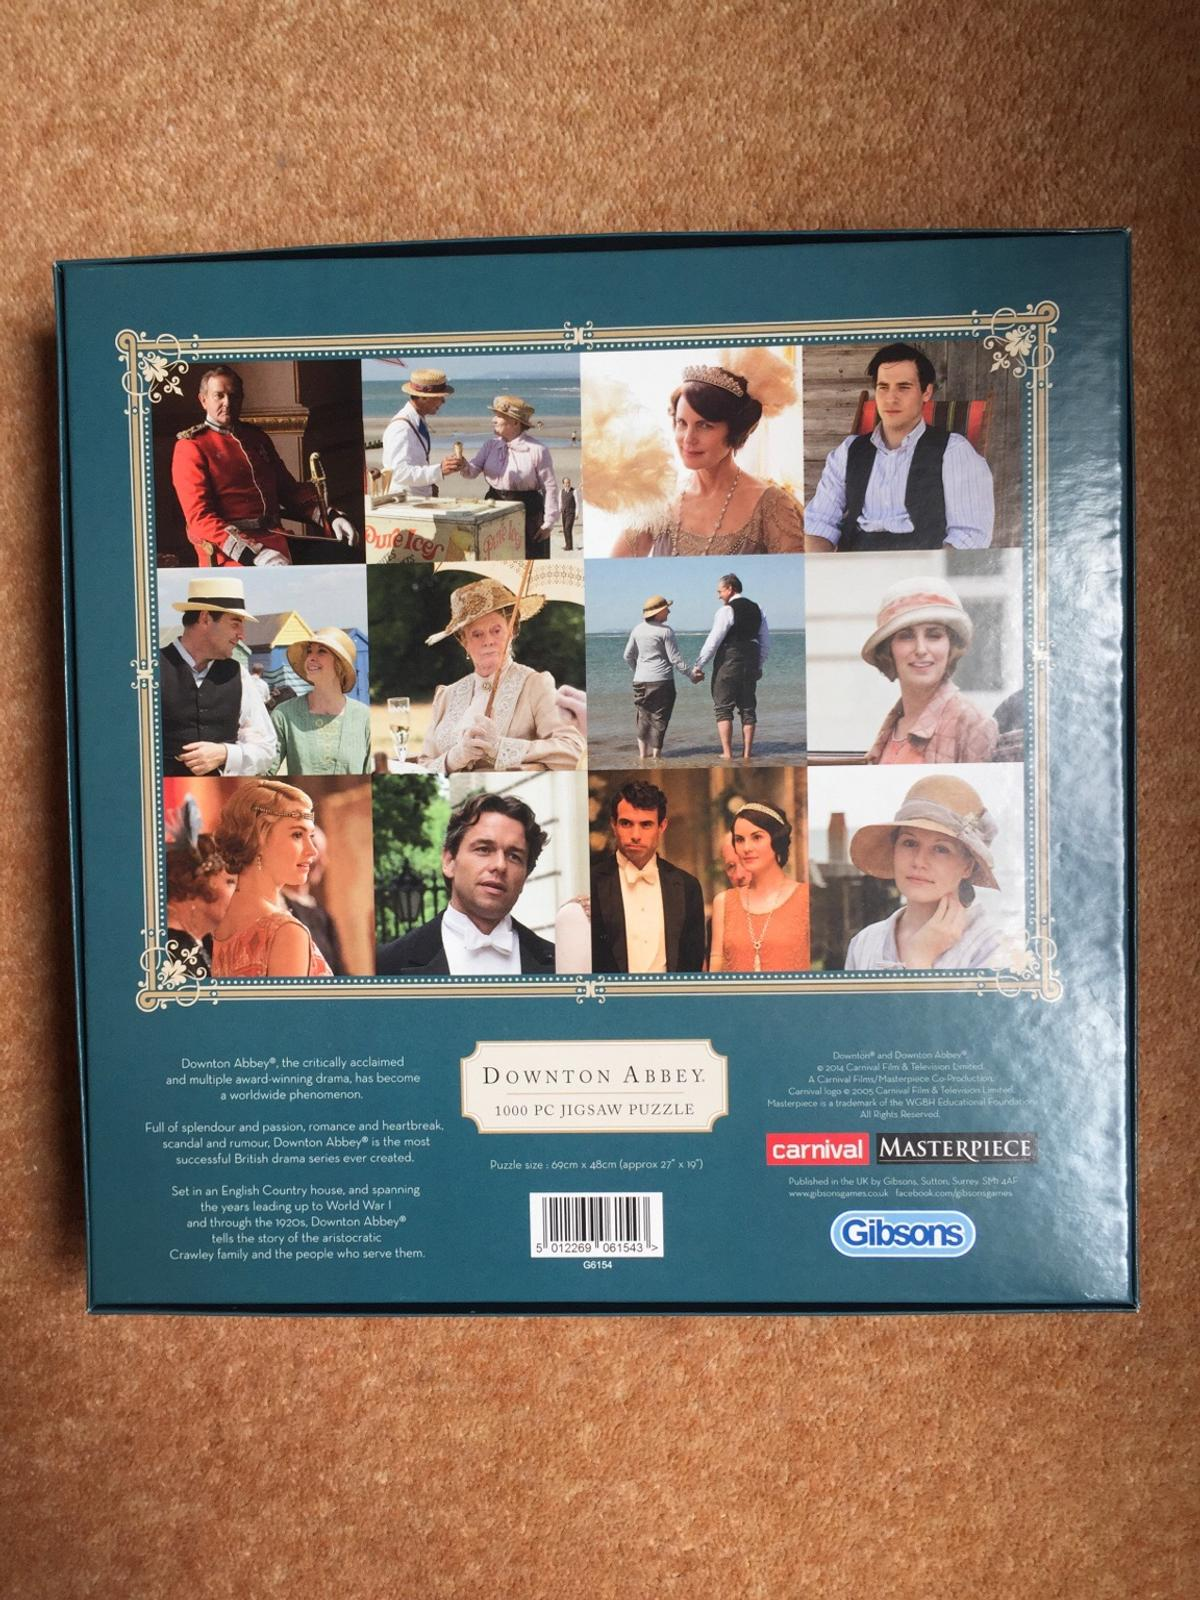 Downton Abbey jigsaw puzzle